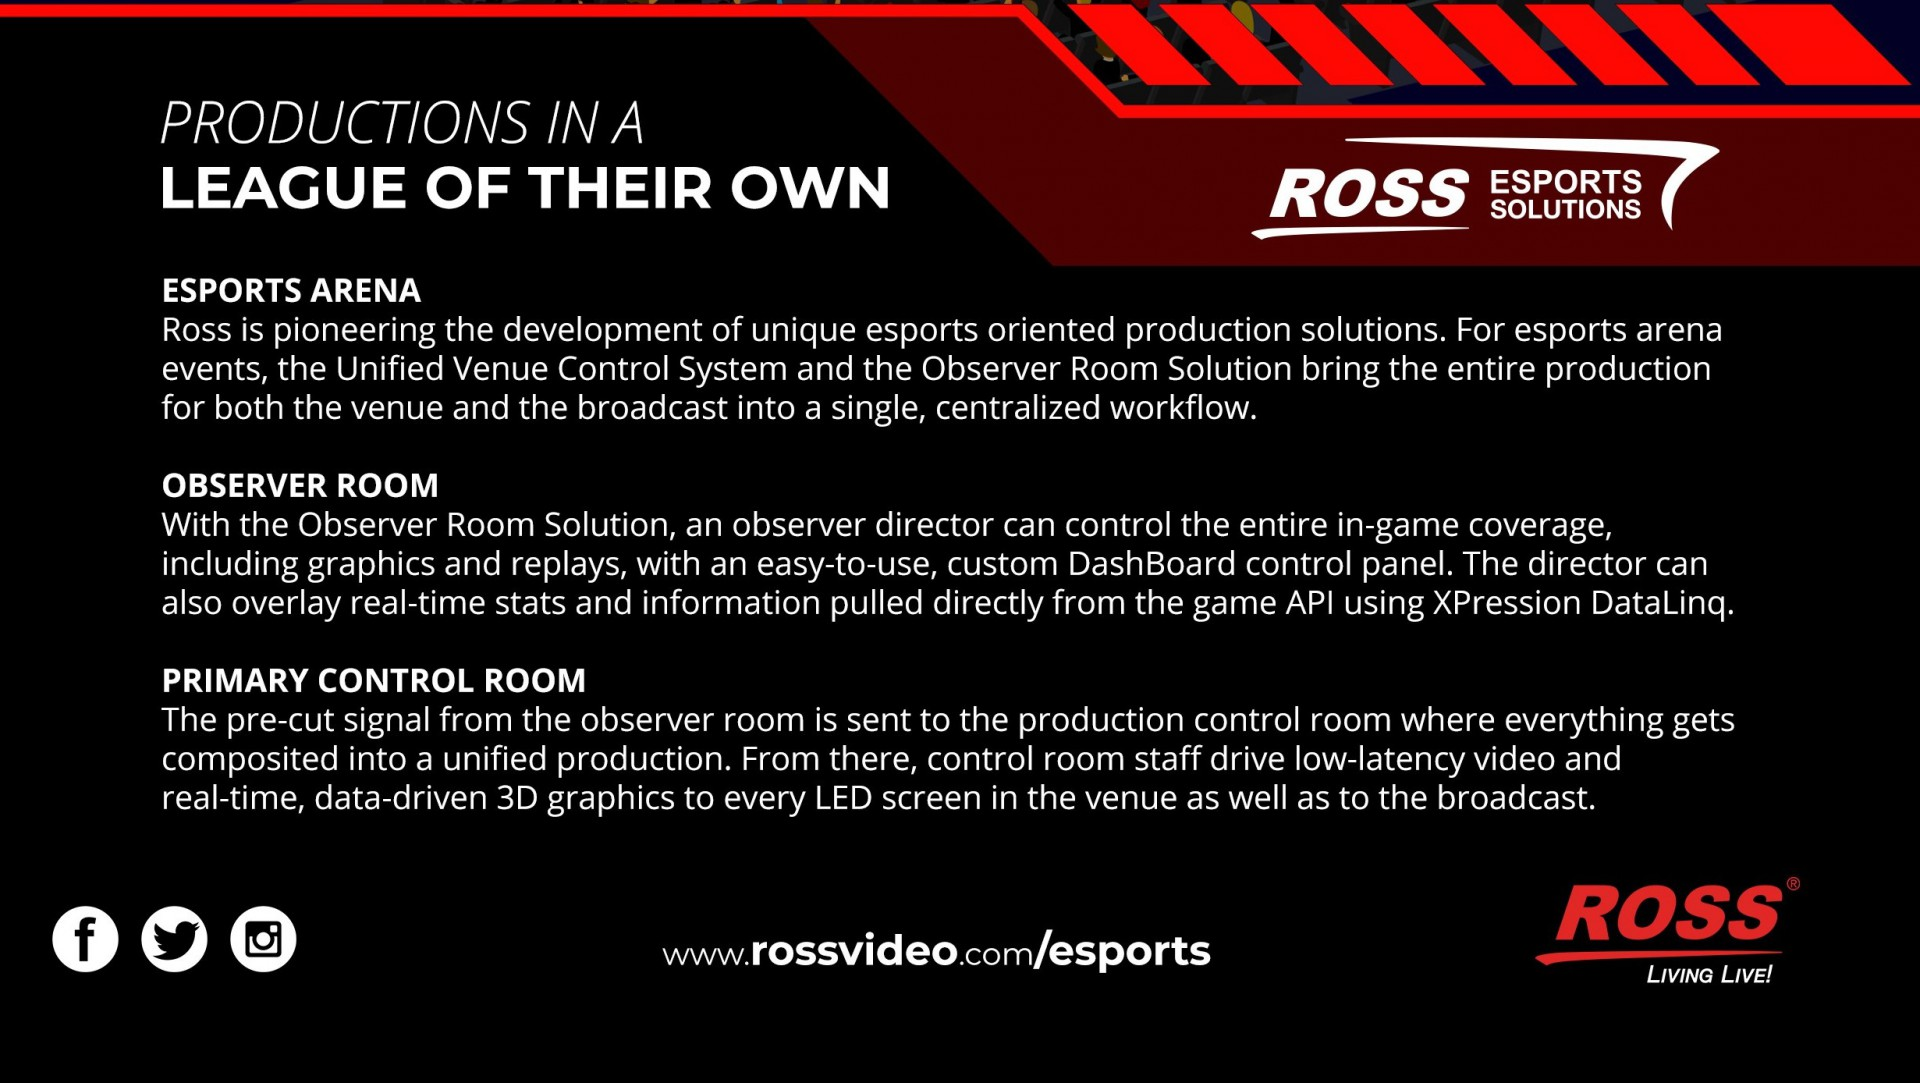 Ross Video Esports Graphics